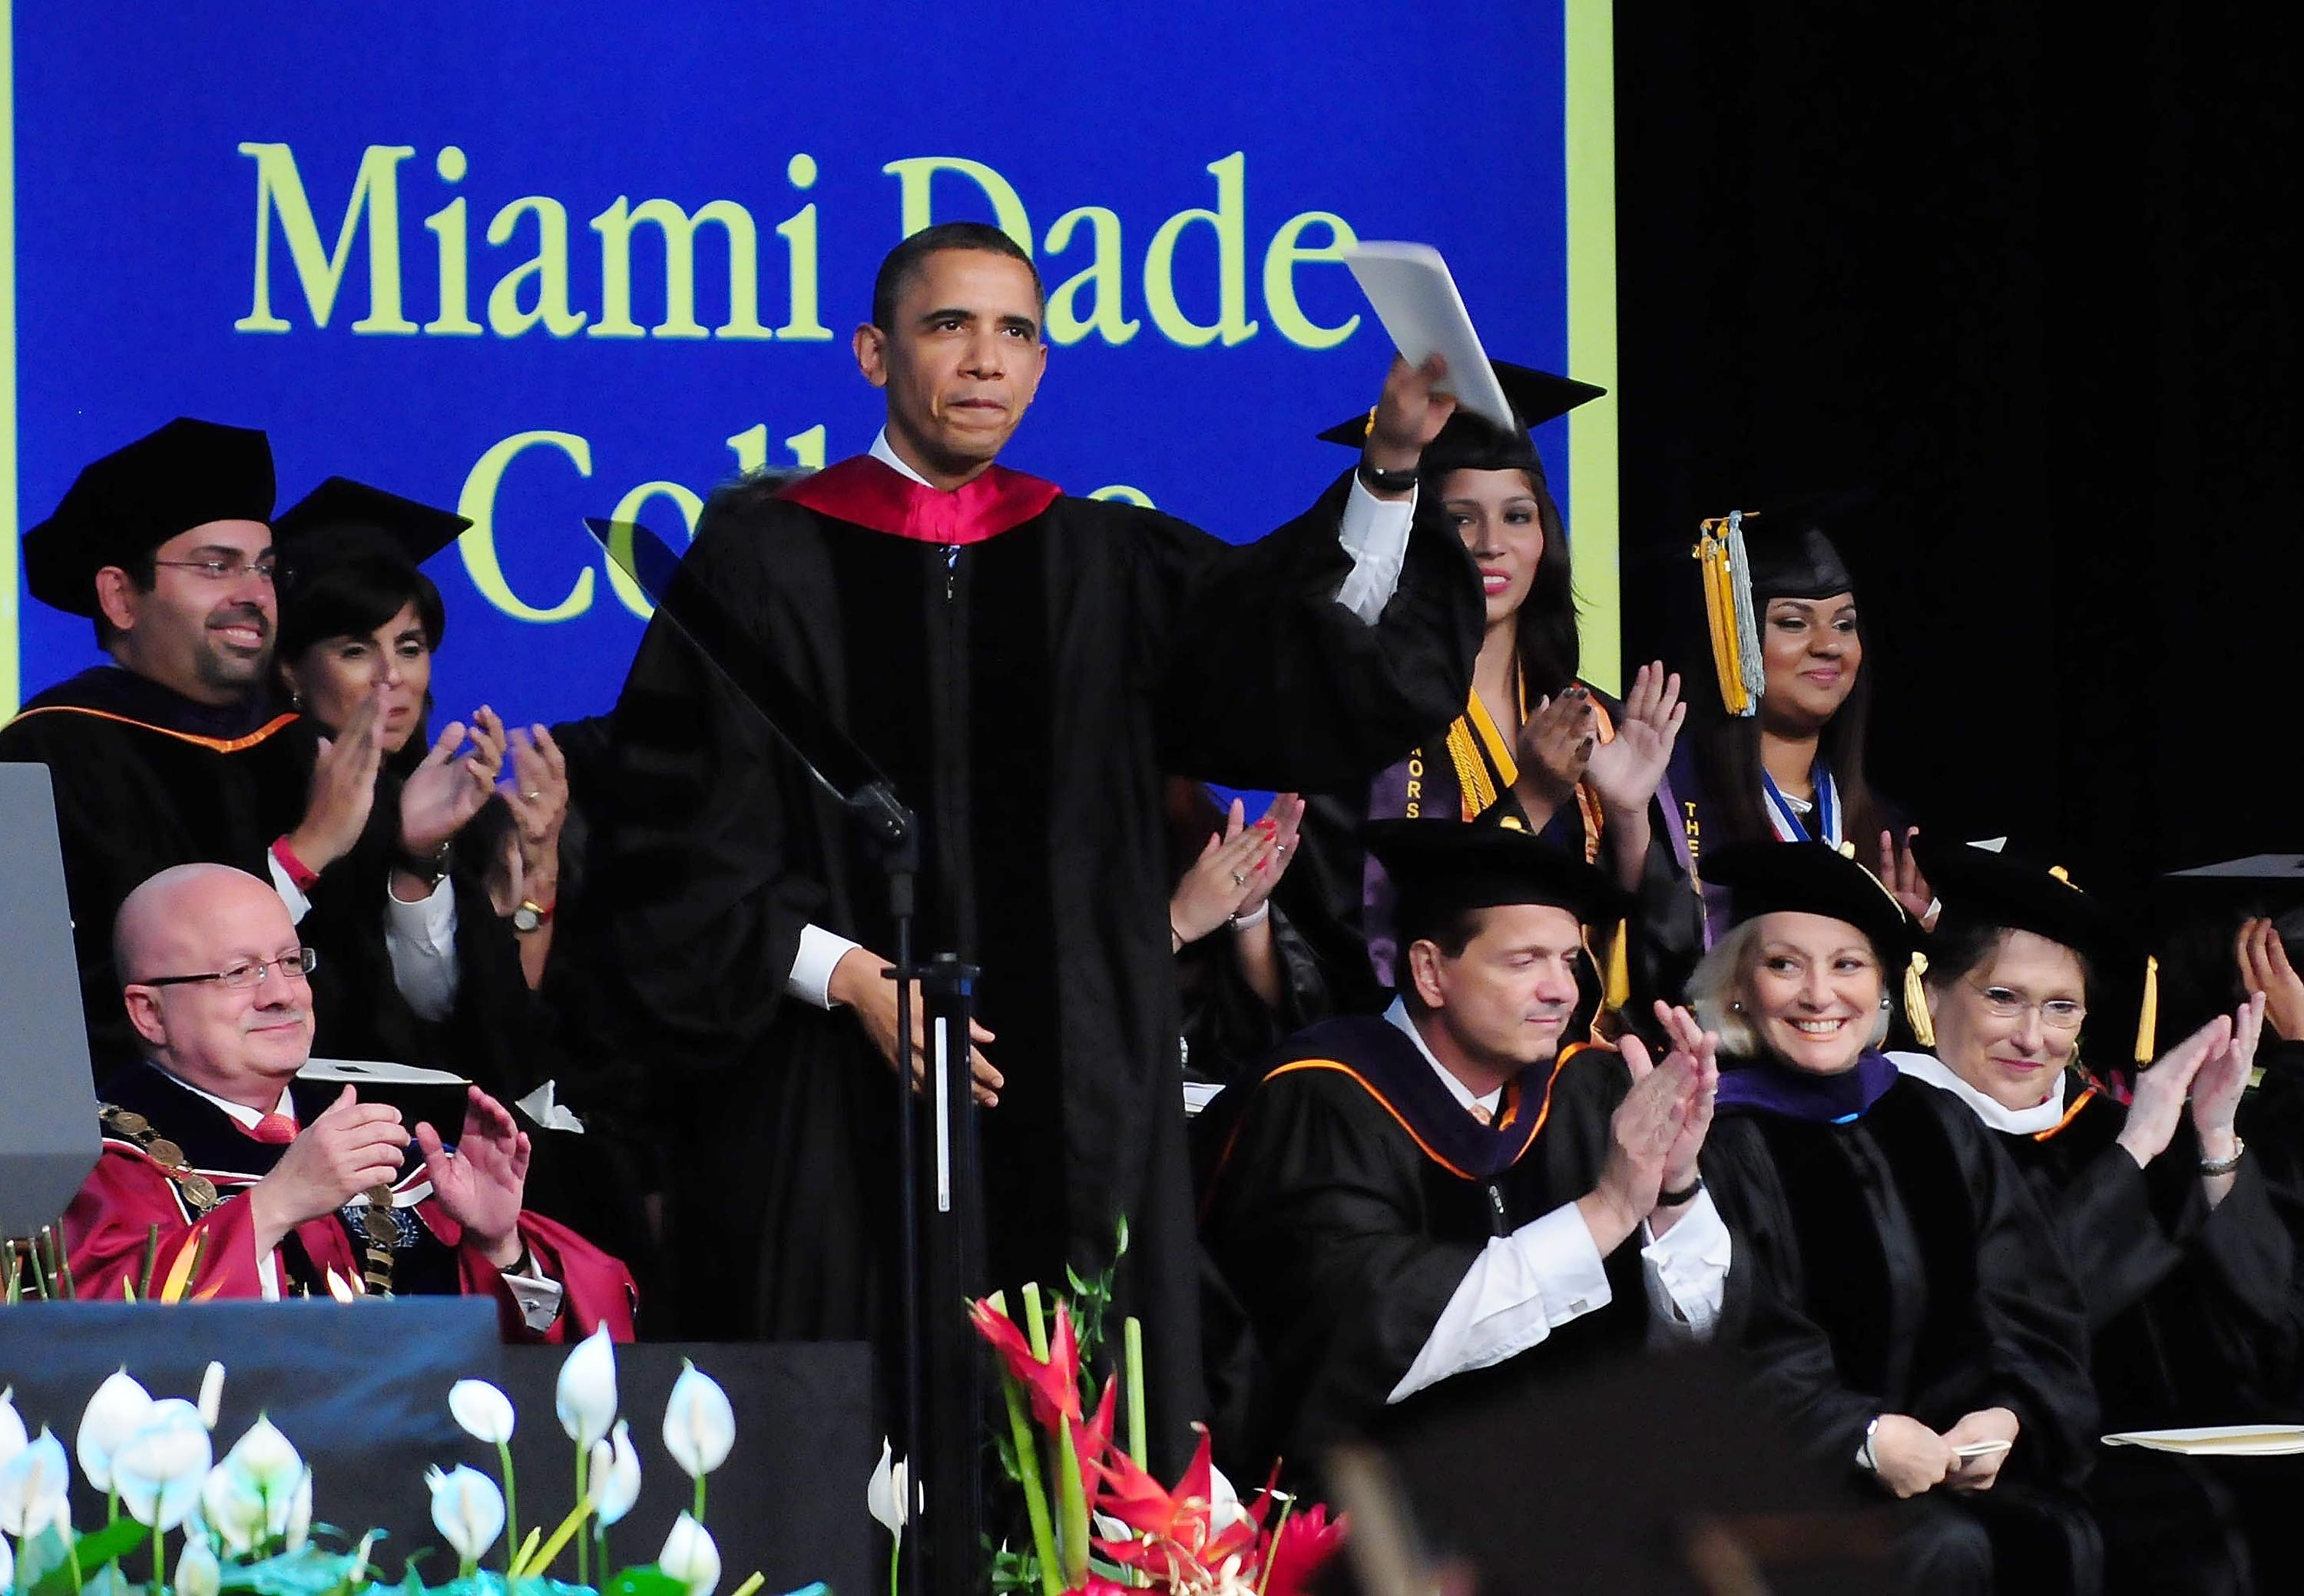 Barack Obama after giving the commencement address during Miami Dade College graduation ceremonies on April 29, 2011 in Miami, Florida.